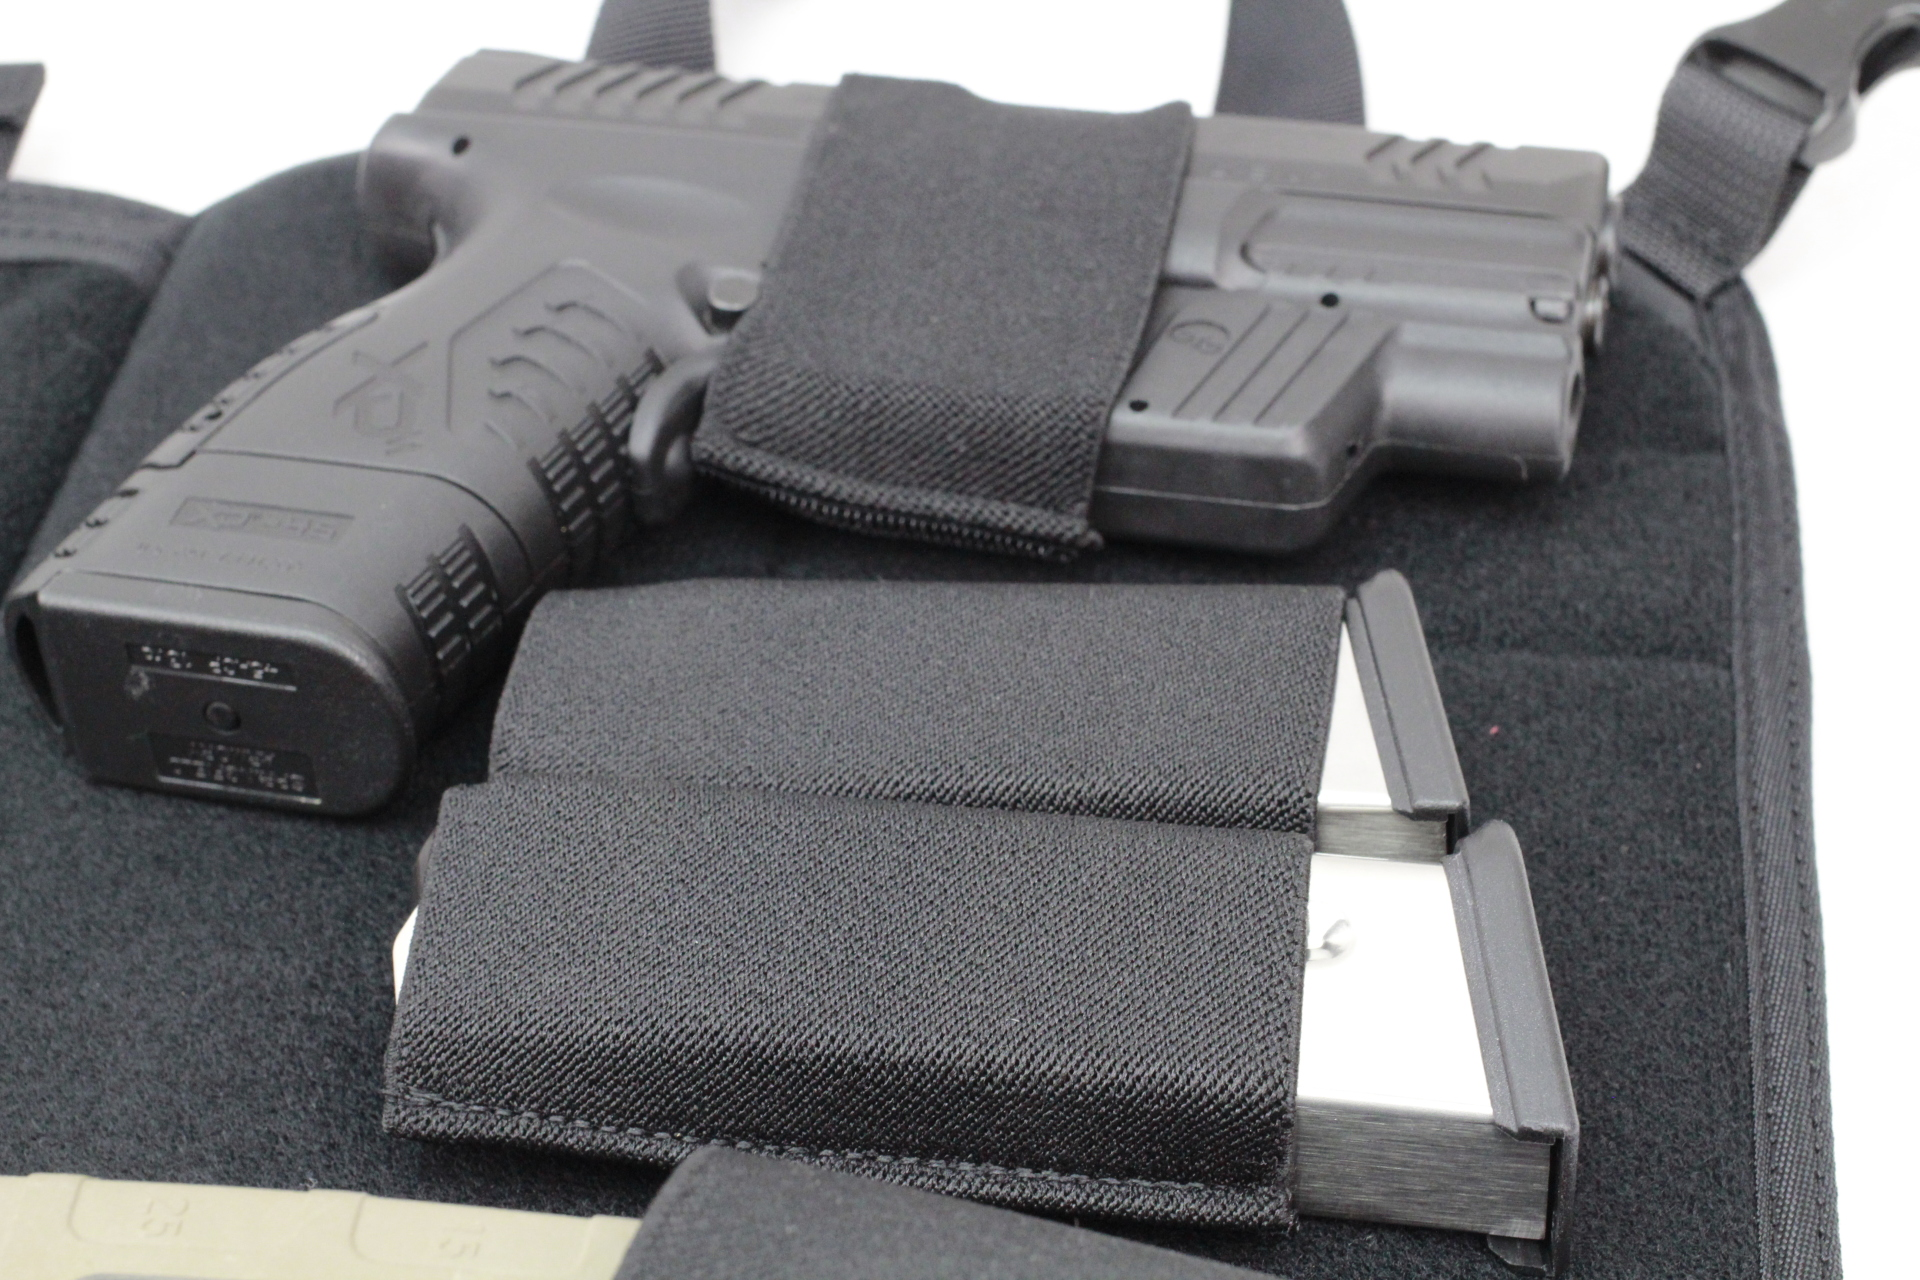 Large Tactical DASH bag with pistol holster and extra mags close-up